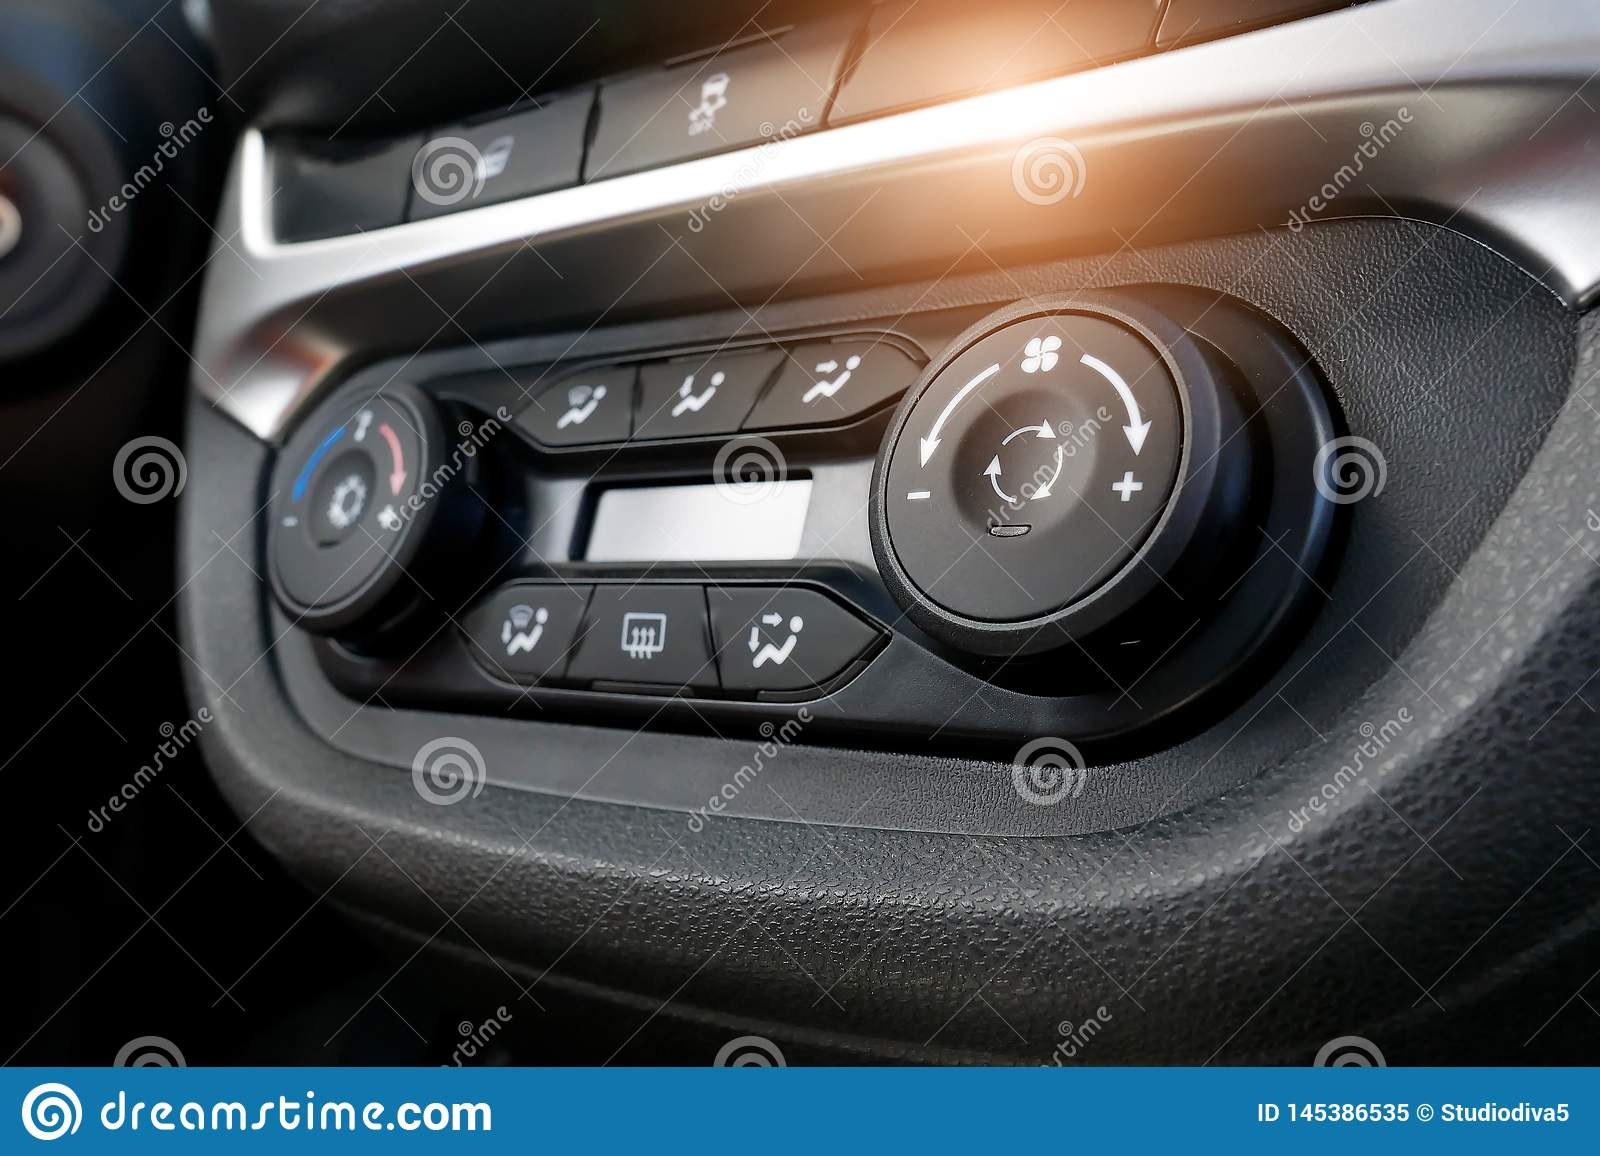 Air conditioning button inside a car. Climate control unit in the new car. Modern car interior details. Car detailing. Selective